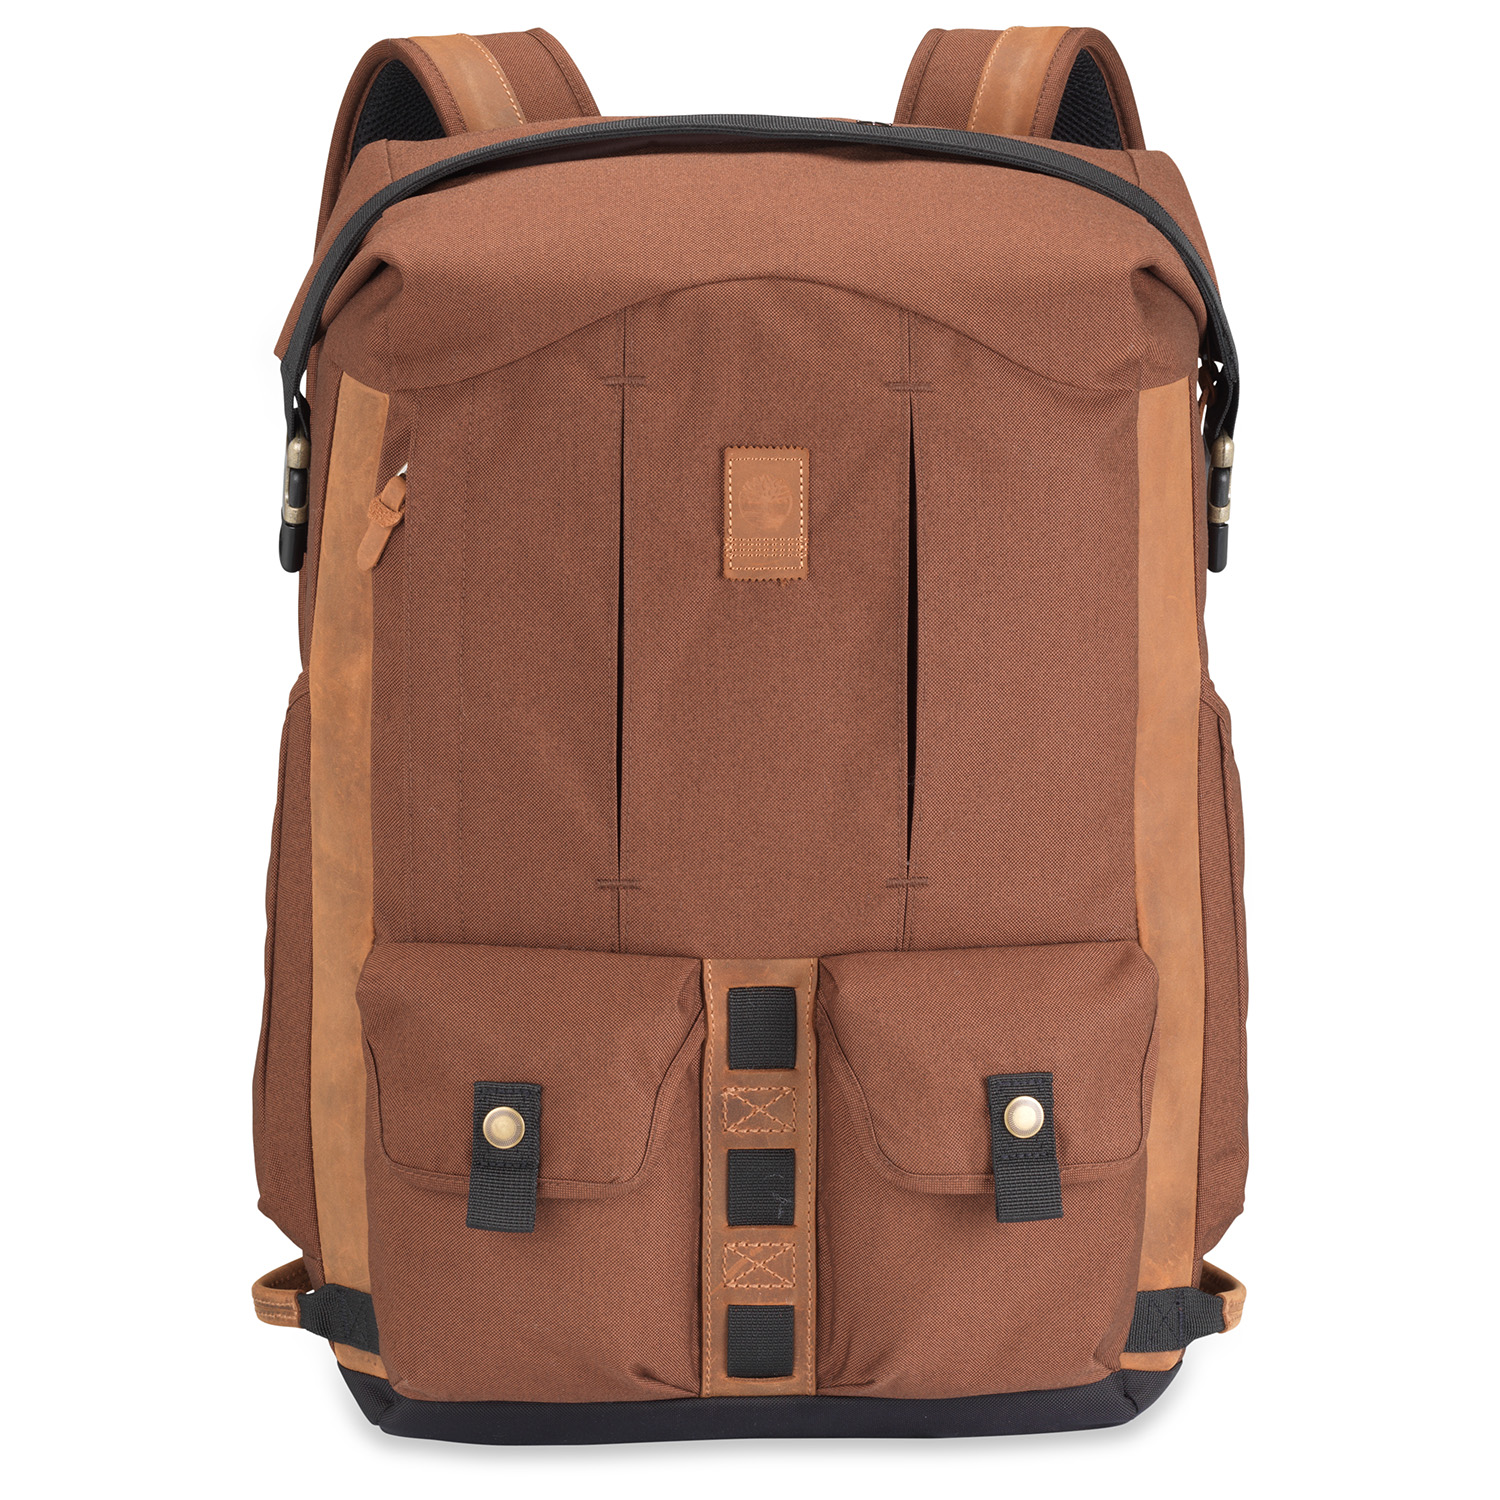 How To Waterproof A Backpack 4FcM2ktK